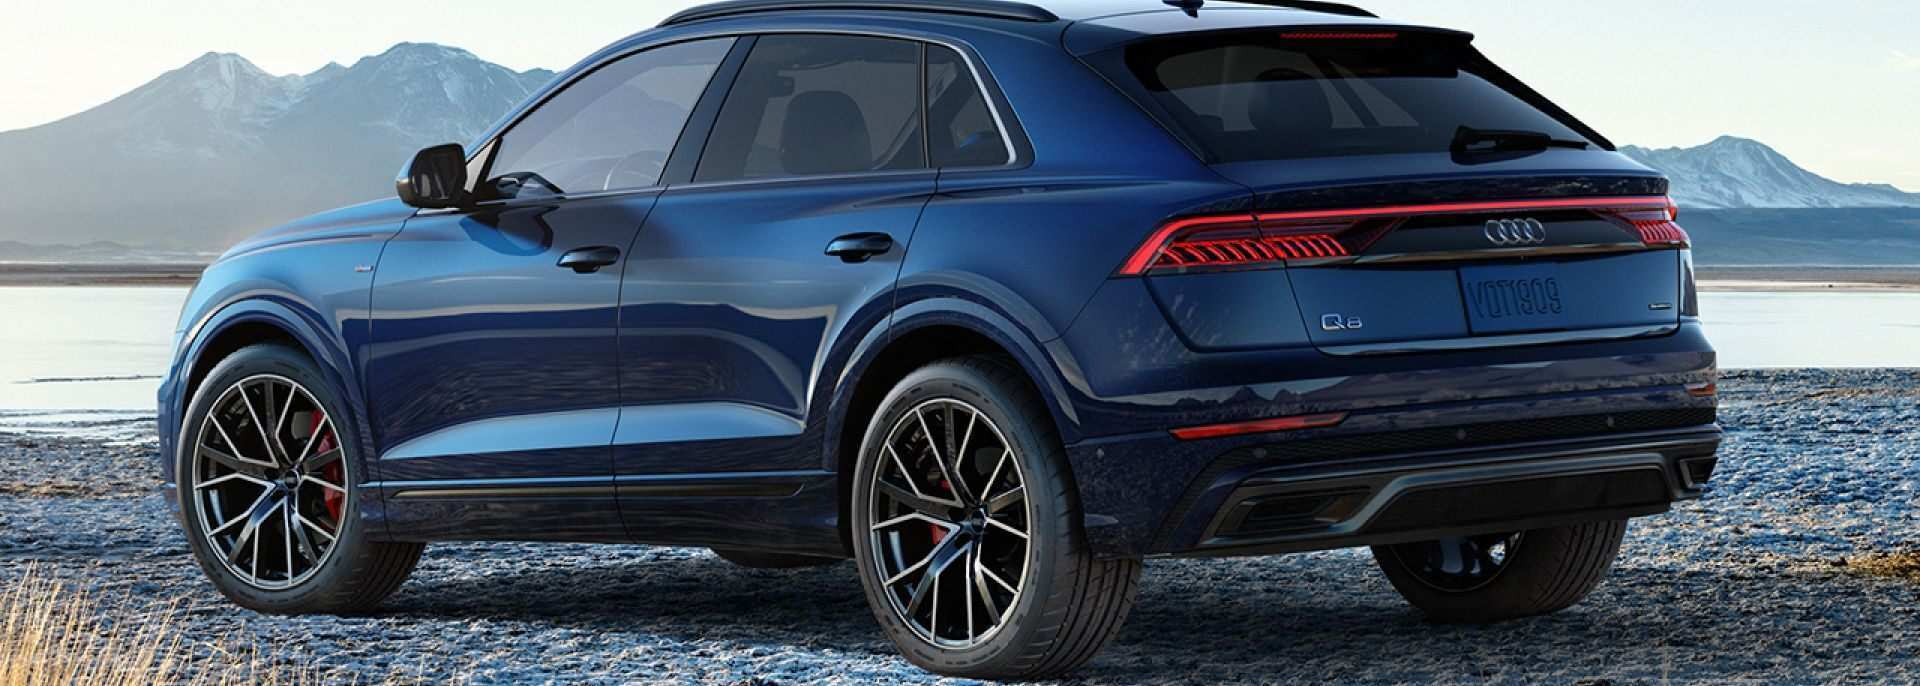 14 The 2019 Audi Q8 Price And Release Date